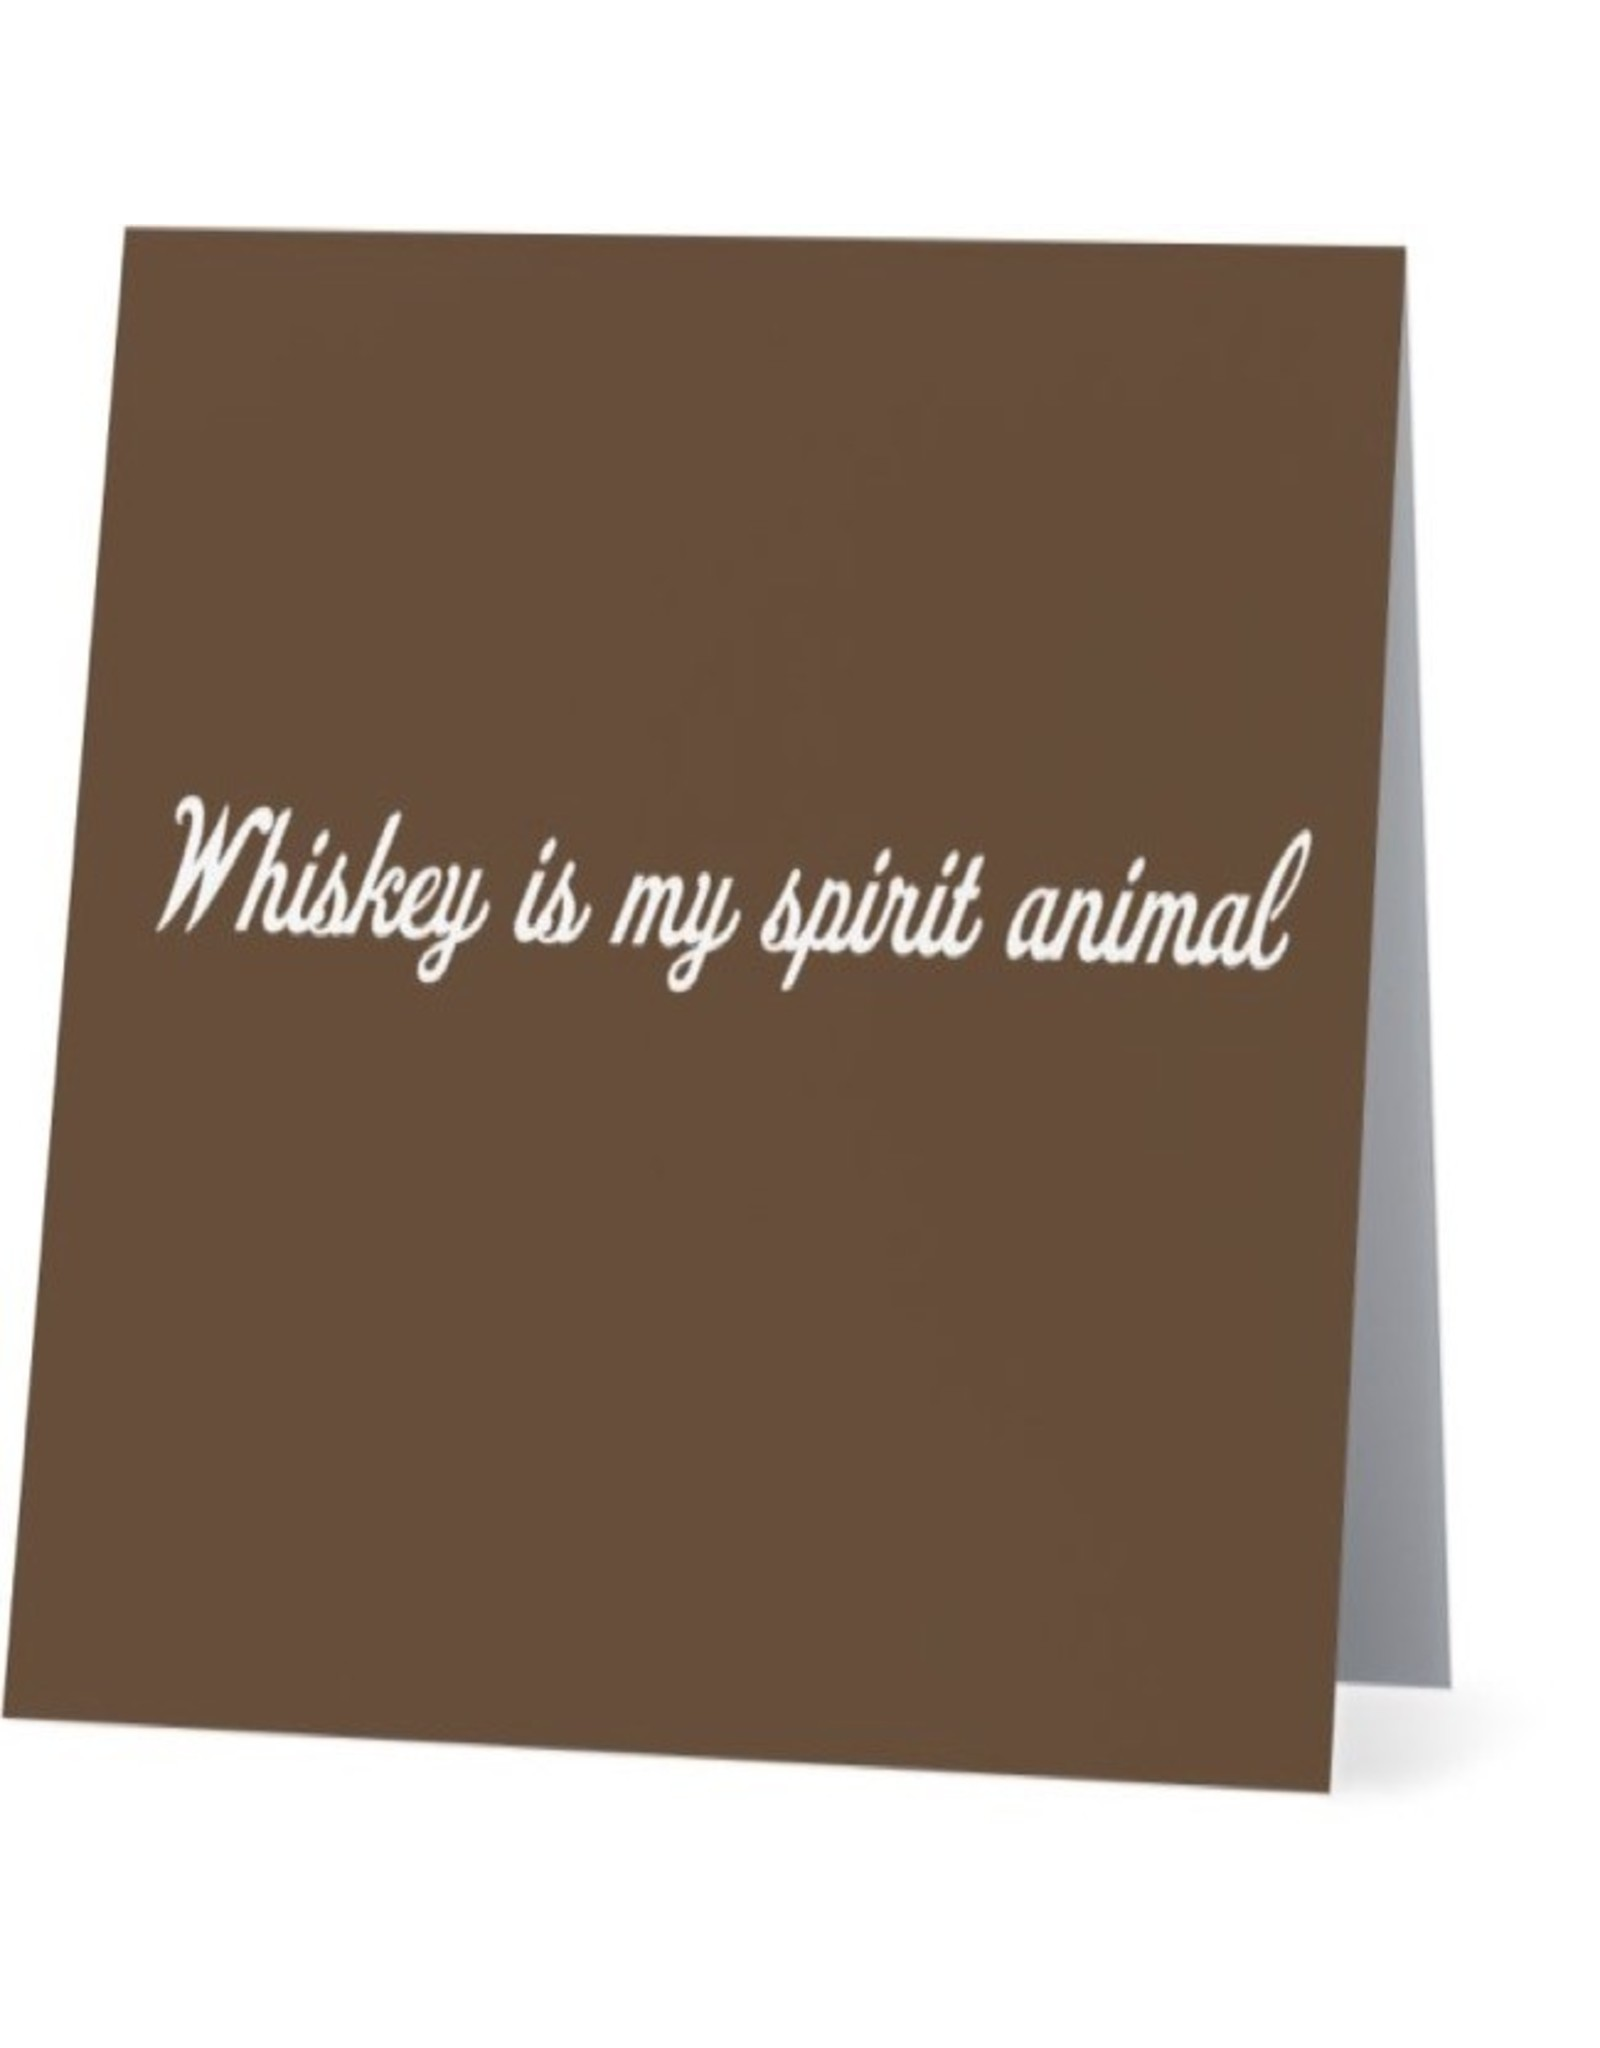 Card #056 - Whiskey Is My Spirit Animal